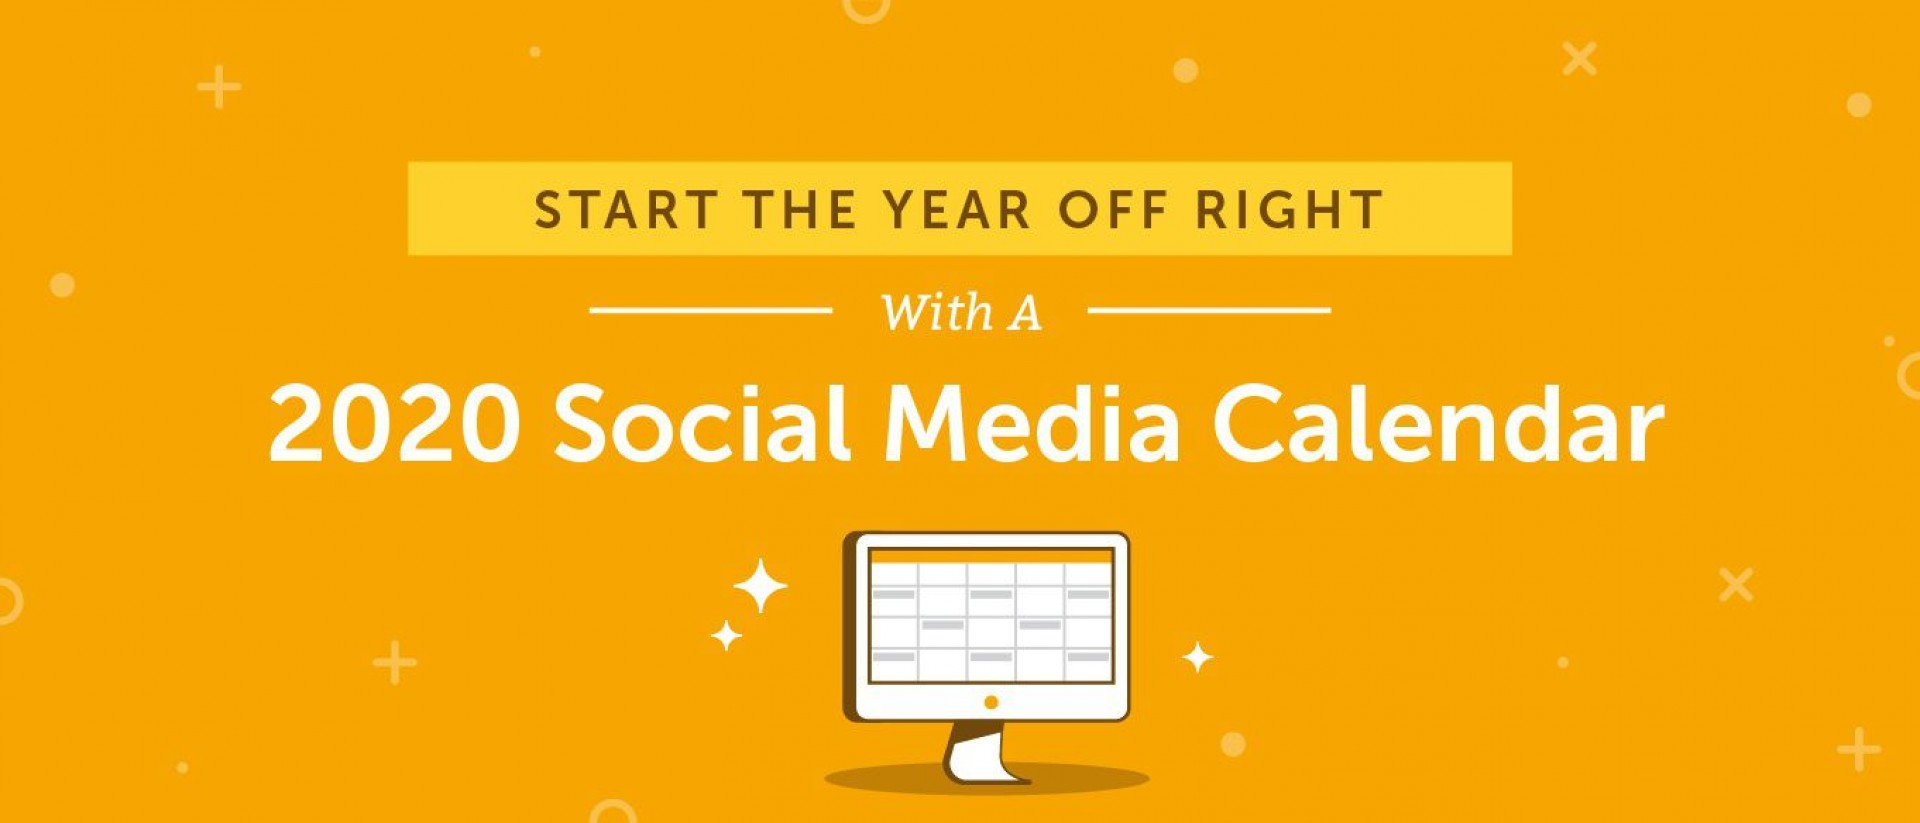 001 Best Social Media Calendar Template Photo  2020 Editorial Excel Free 2019 Download1920